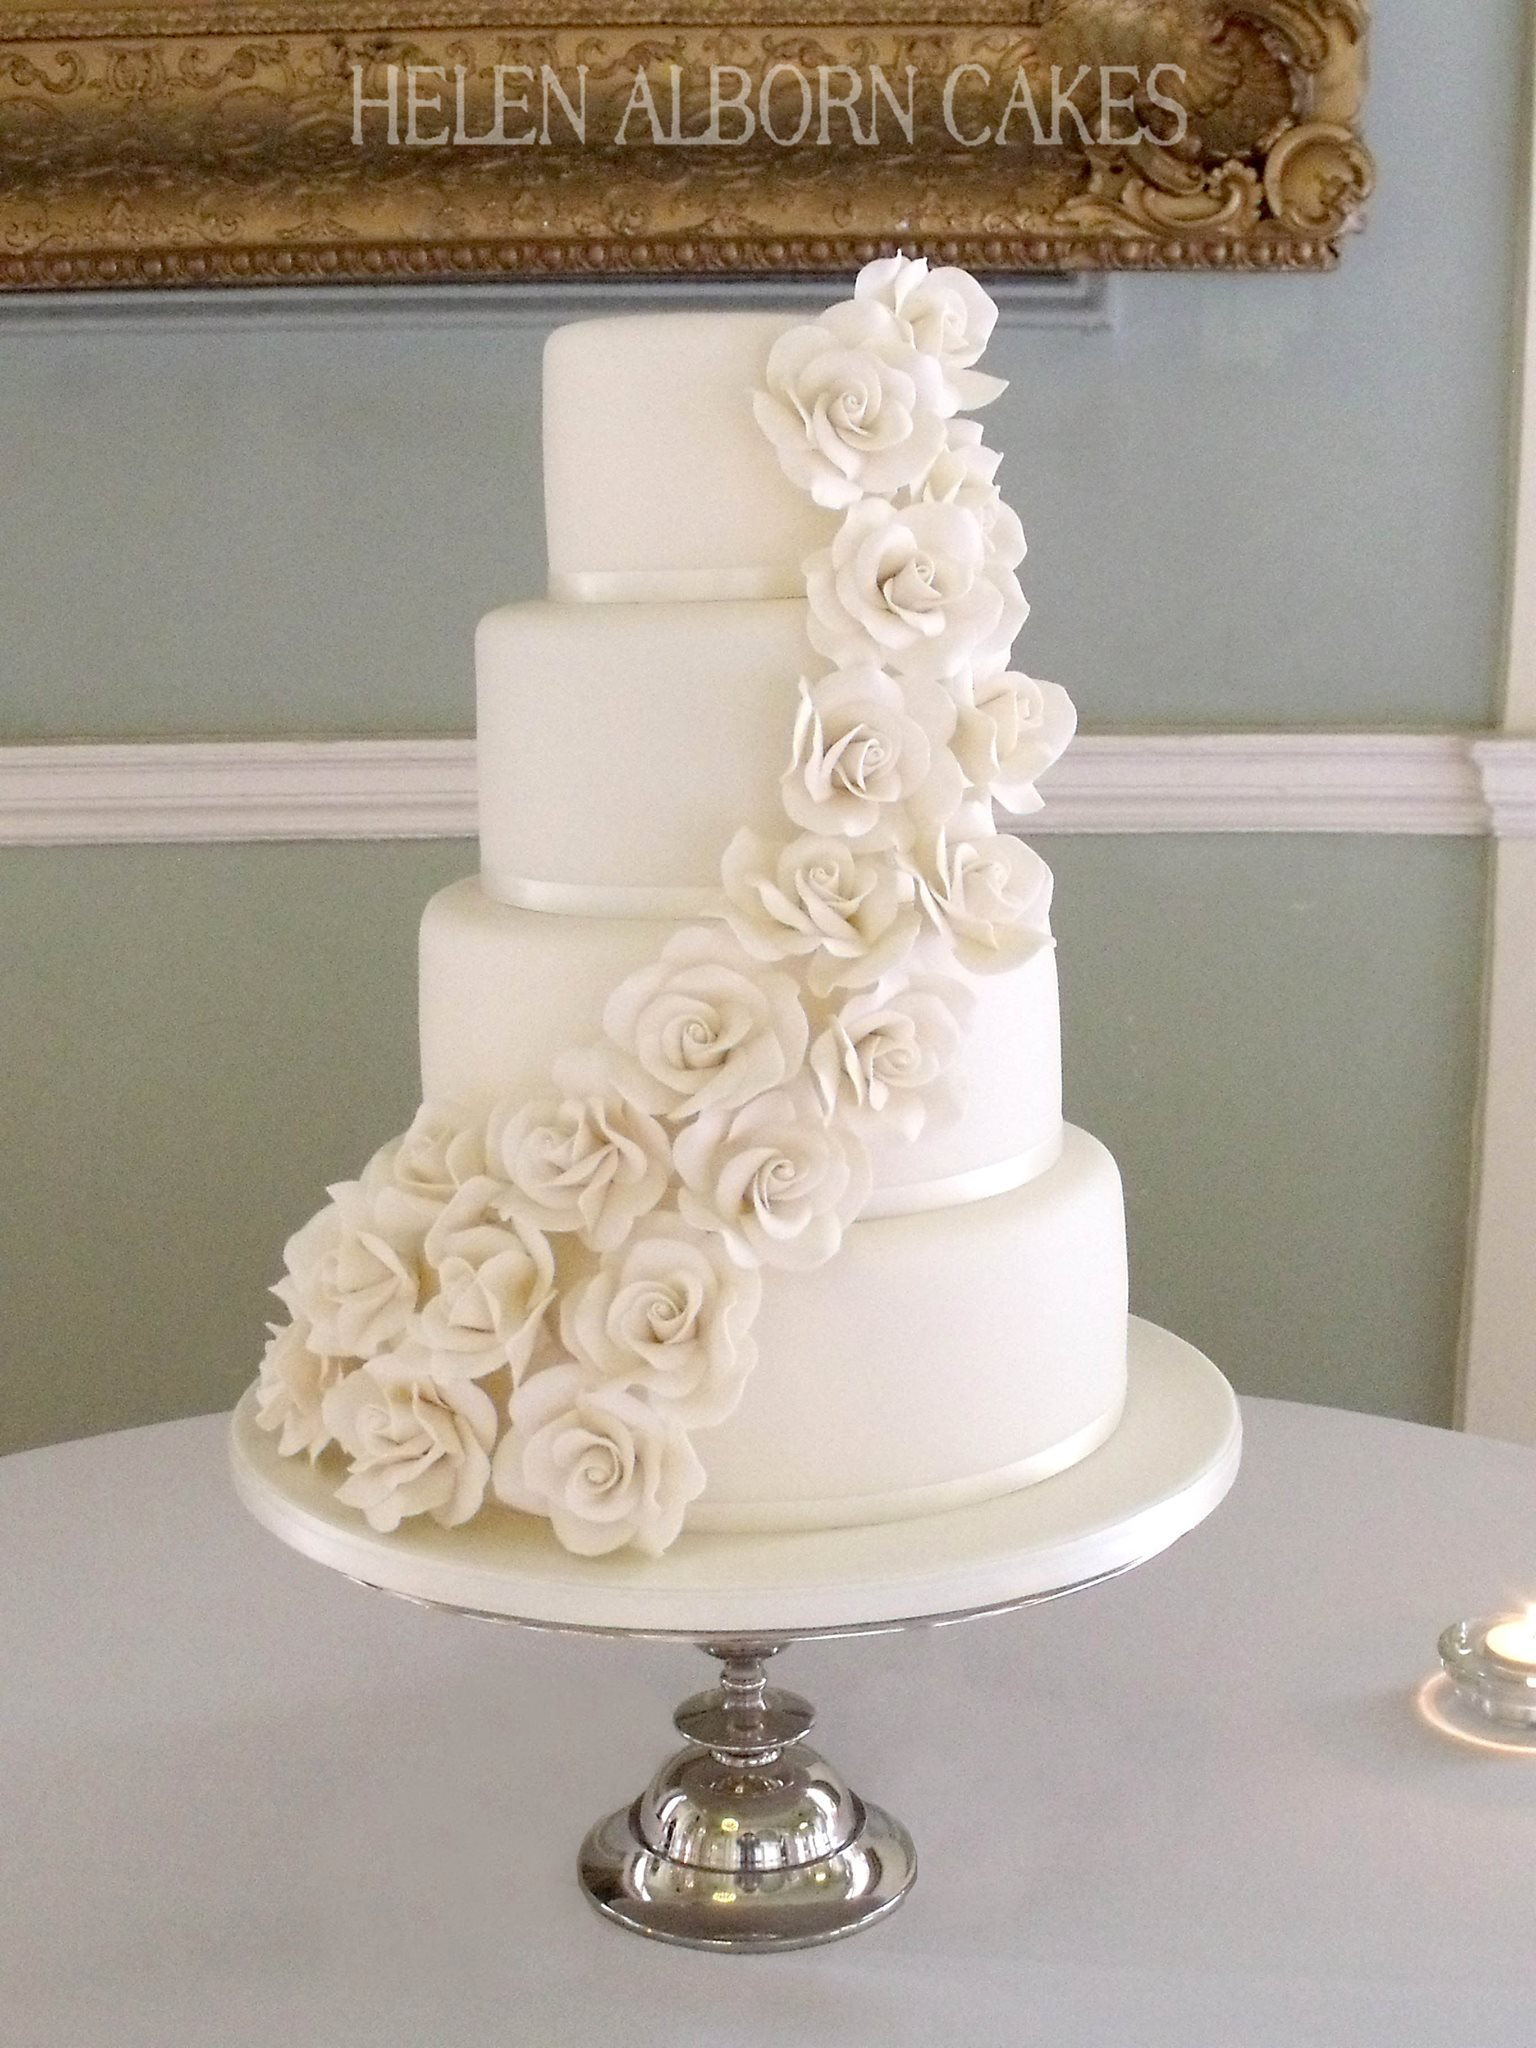 Ivory Roses Wedding Cake by Helen Alborn Cakes